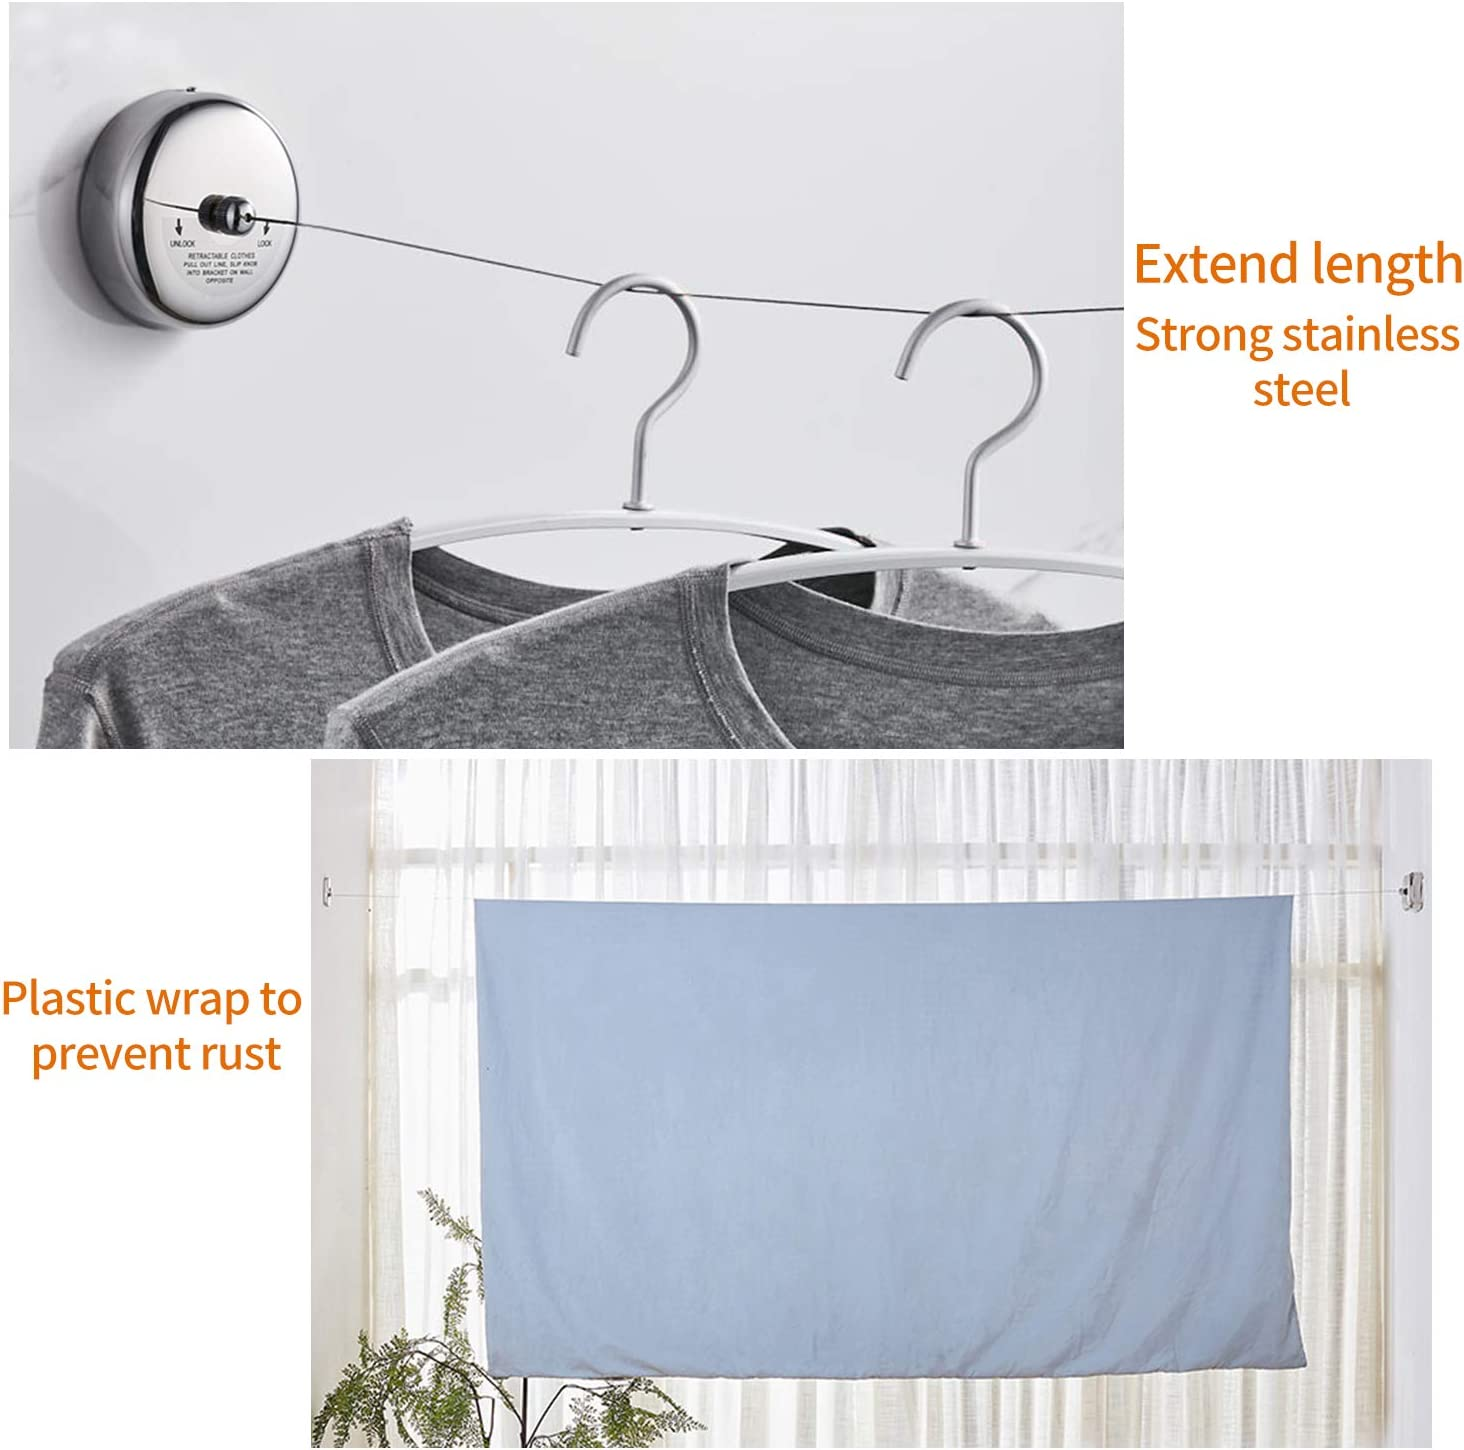 Round Style Polished Chrome Finish 9.2 Feets SUS304 Stainless Steel Clothes Dryer with Adjustable Stainless Steel Rope String Hotel Style Heavy Duty MASCARRY Retractable Clothesline